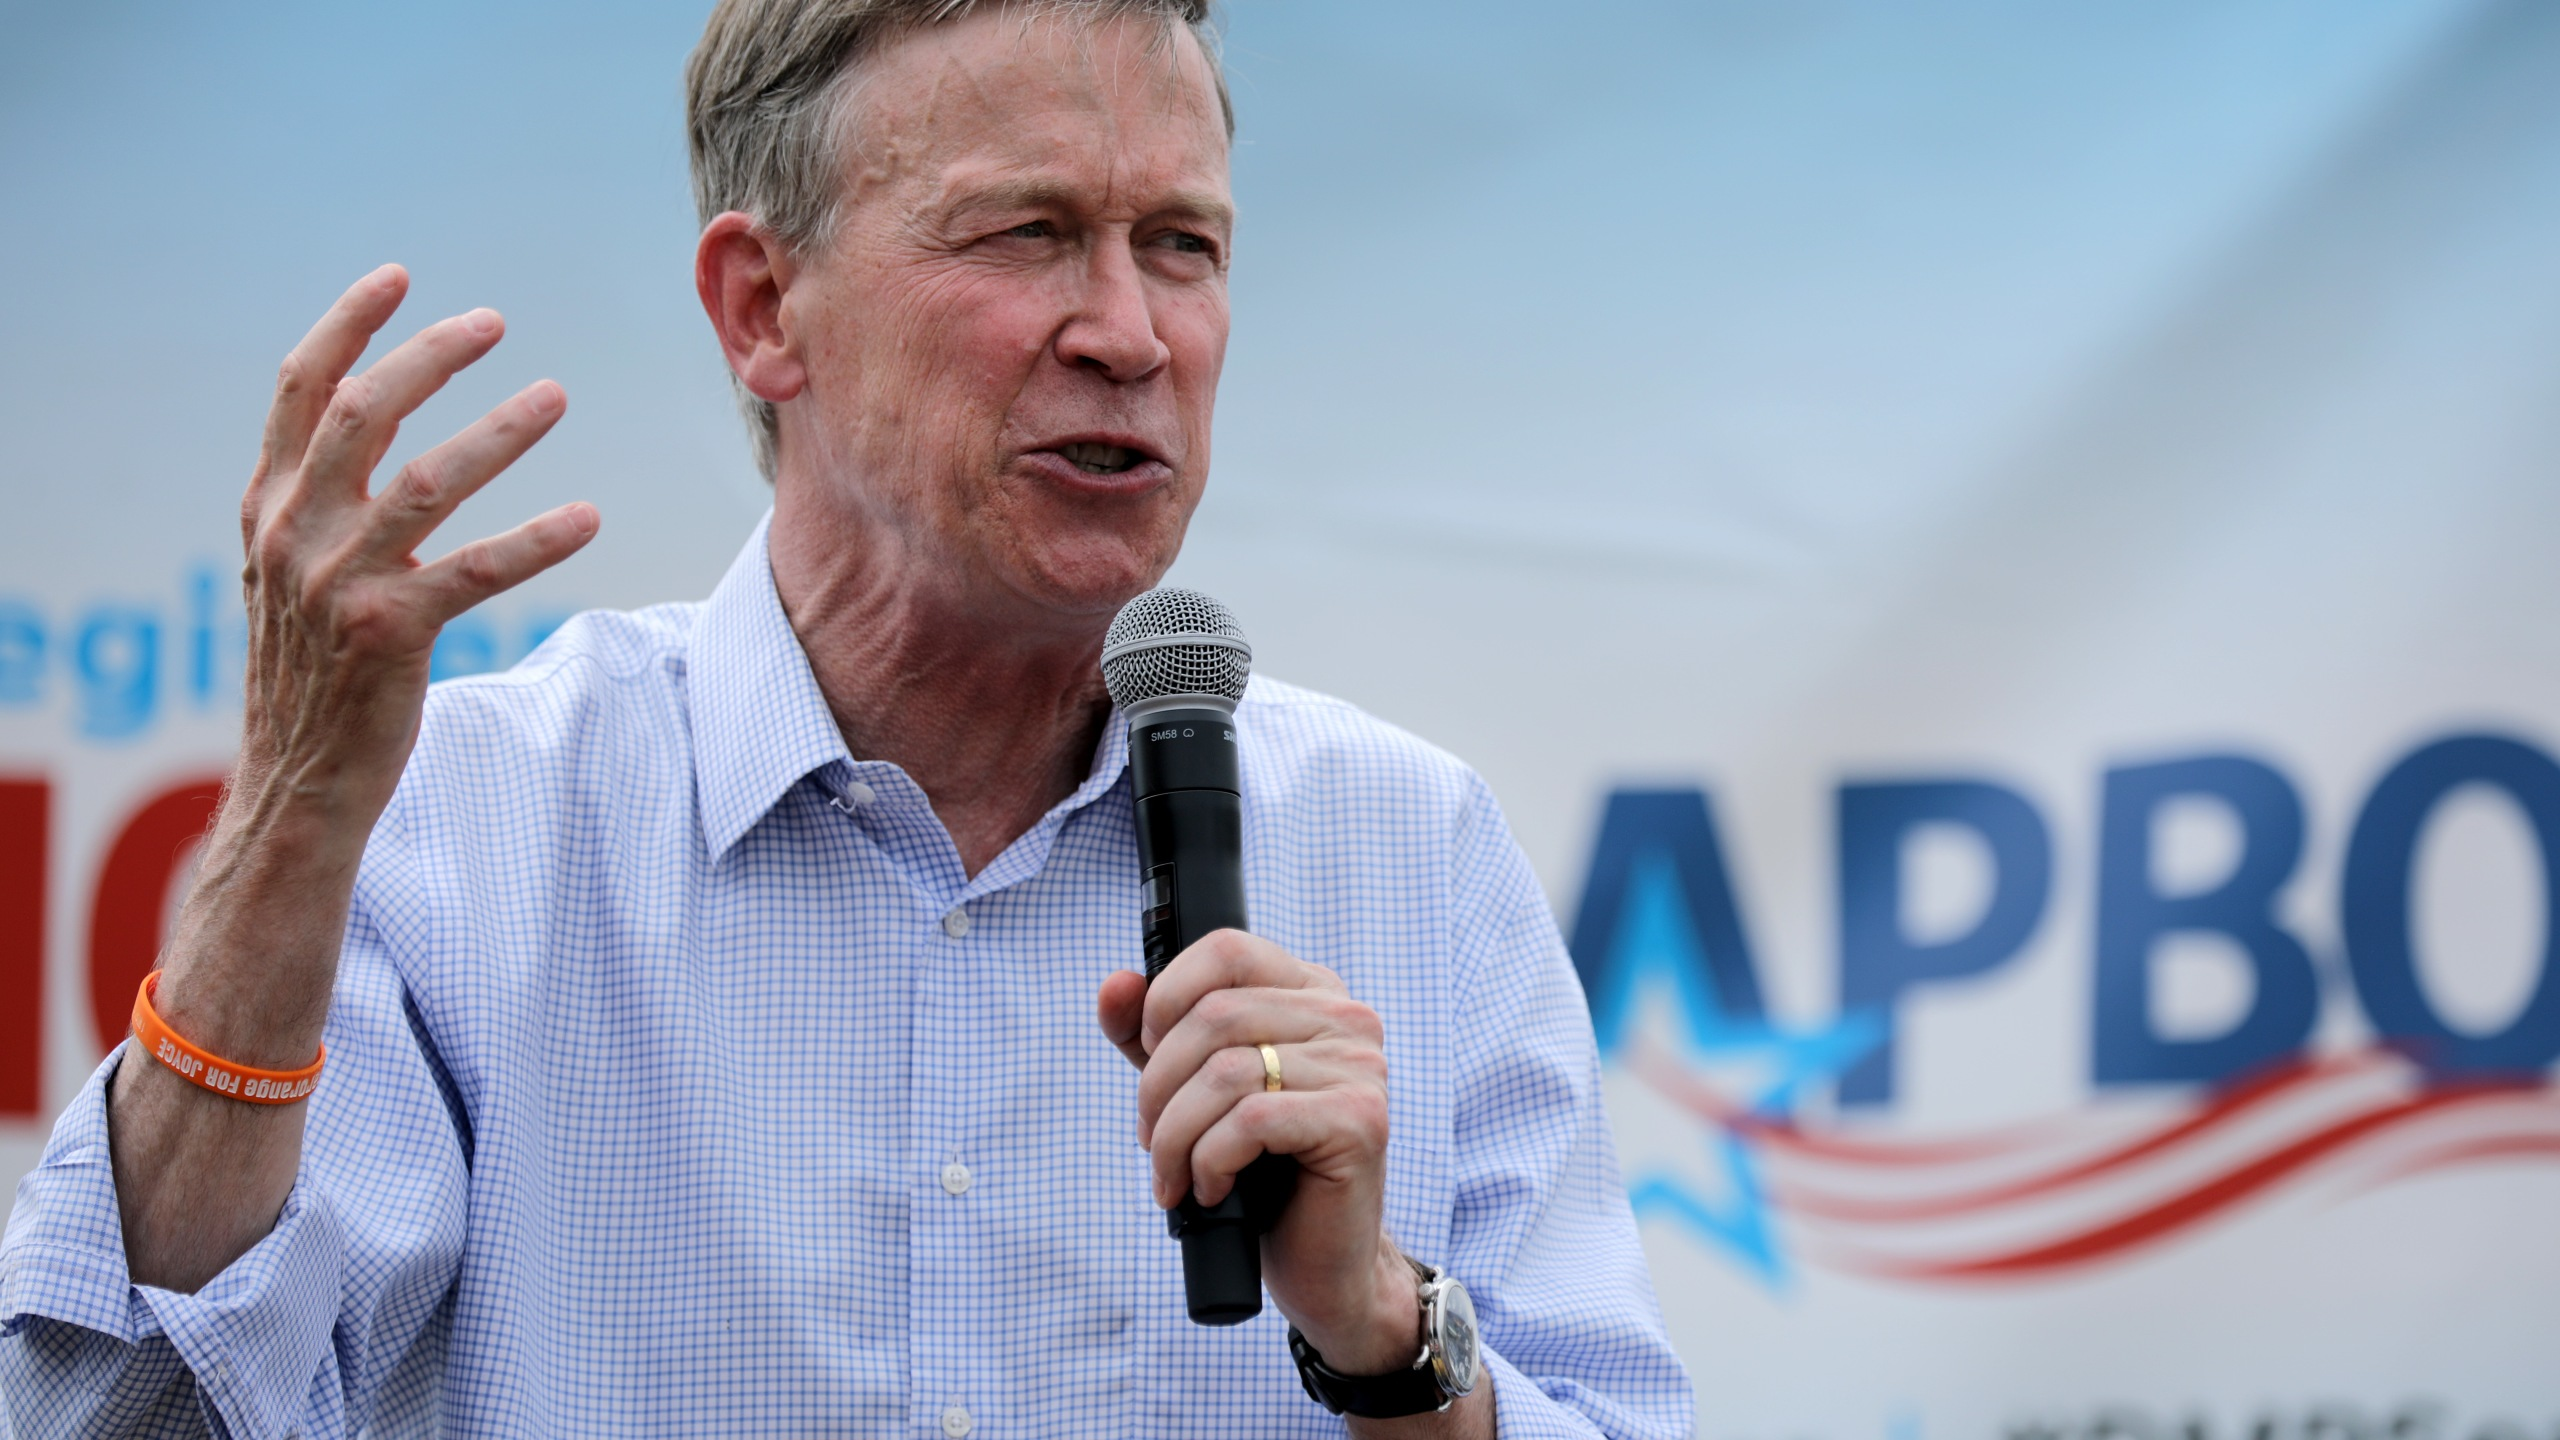 Democratic presidential candidate and former Colorado Governor John Hickenlooper delivers a campaign speech at the Iowa State Fair in Des Moines on Aug. 10, 2019. (Credit: Chip Somodevilla/Getty Images)